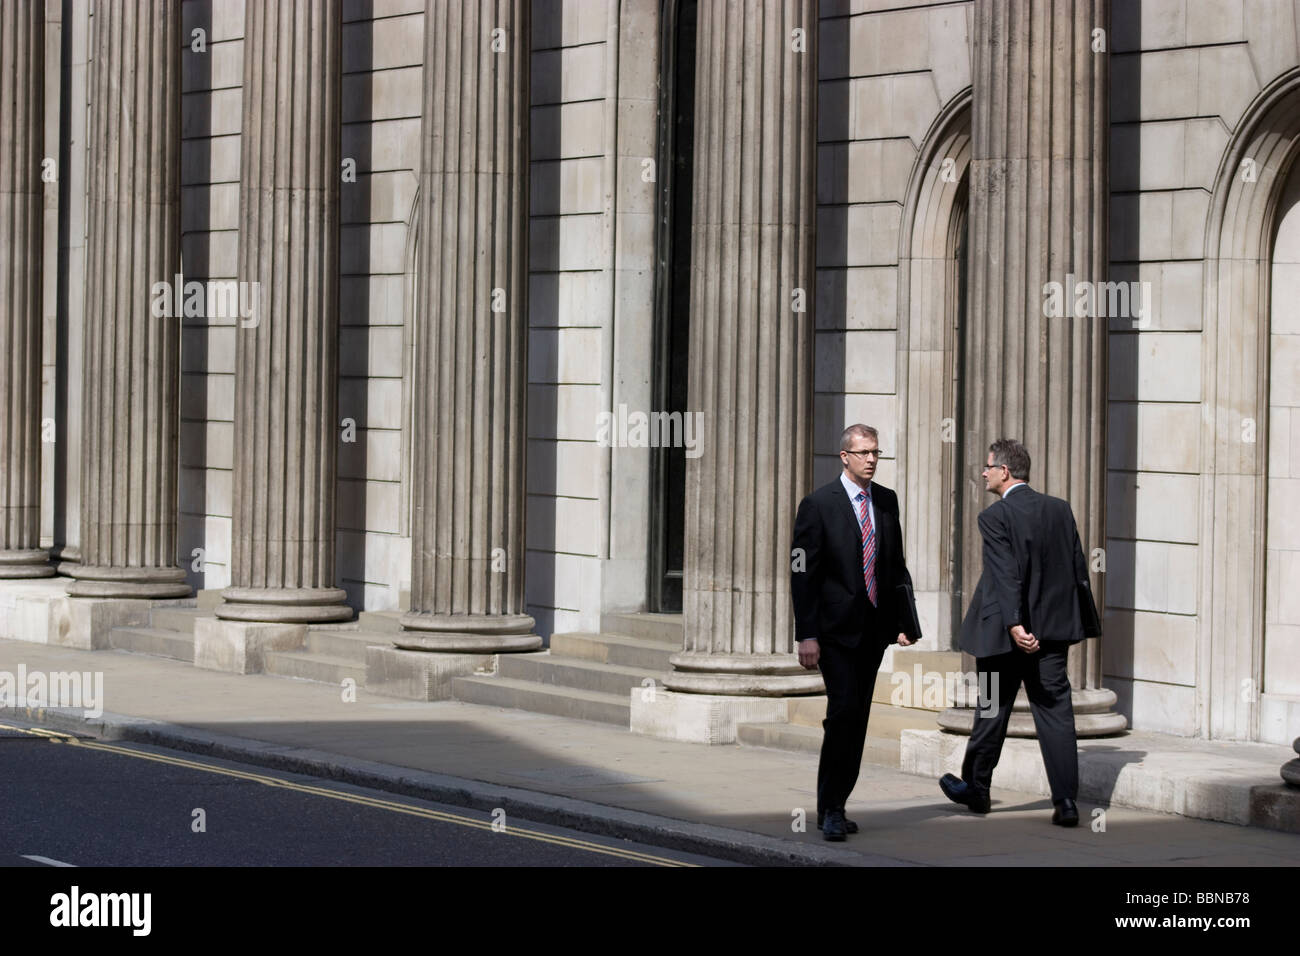 Pillars of the bank of england with office workers threadneedle street city of london - Stock Image